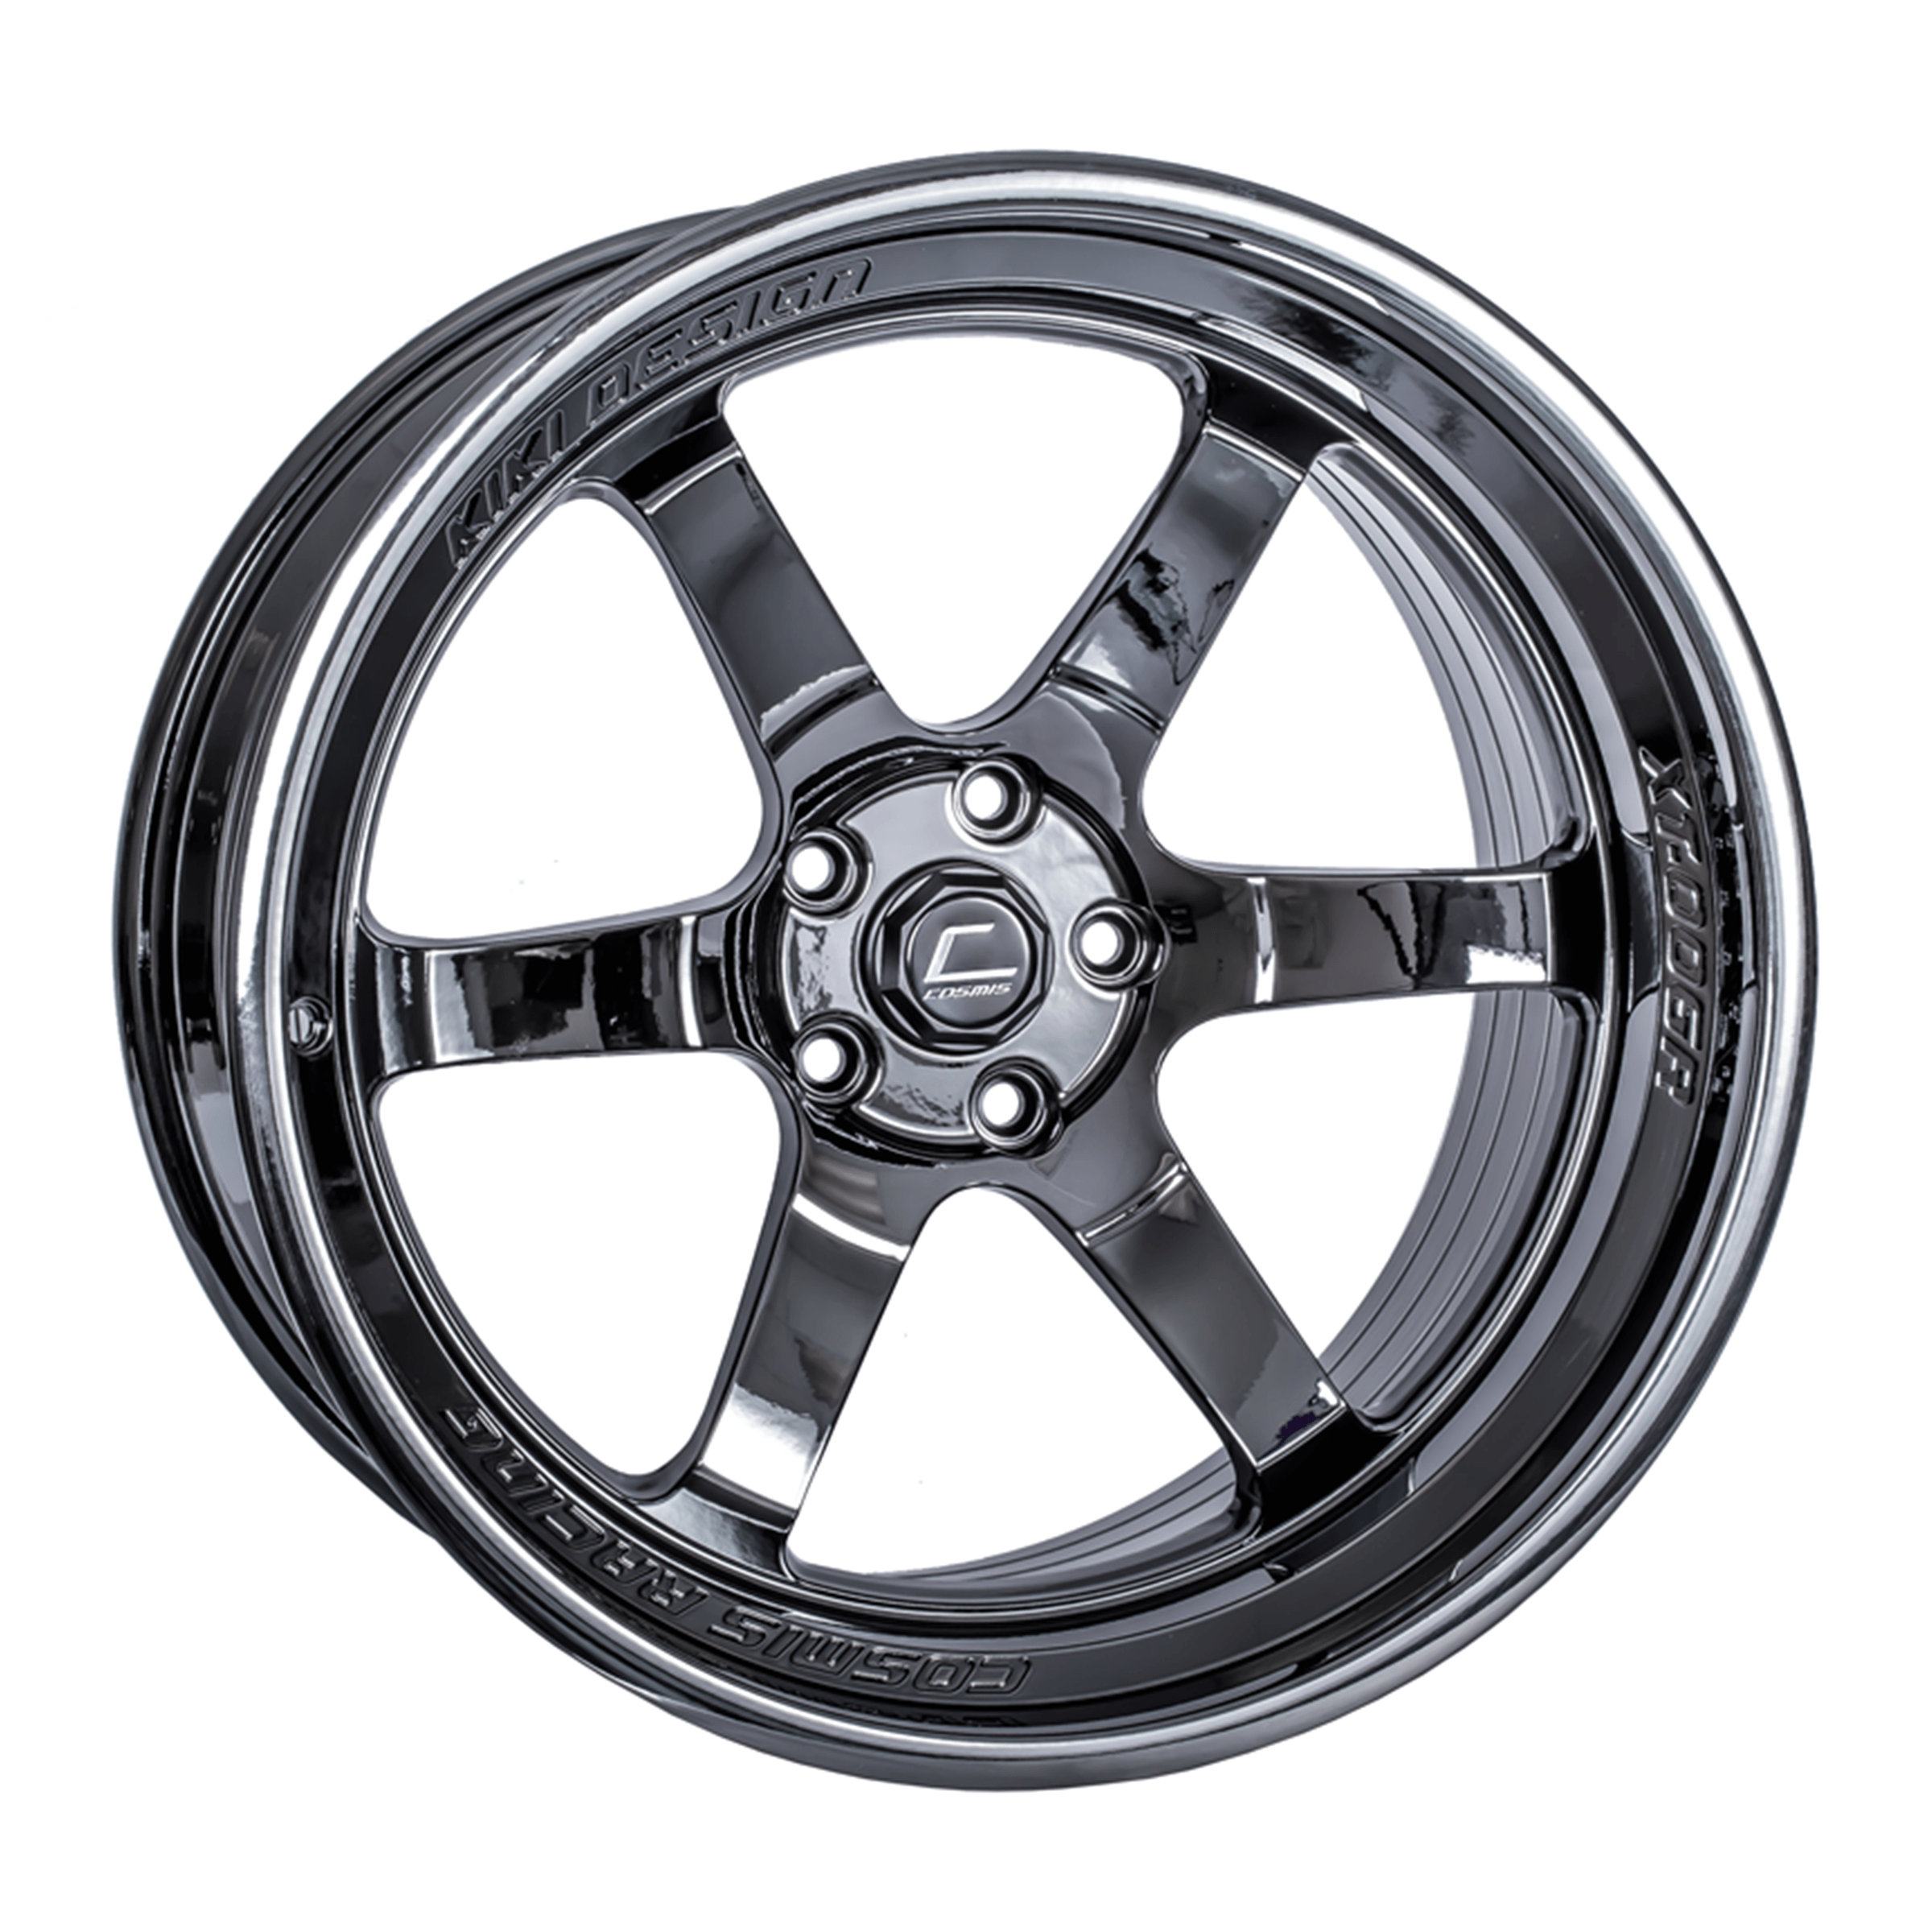 Cosmis Racing XT-006R Wheel, Sold Individually - 18x11 +8mm Black Chrome